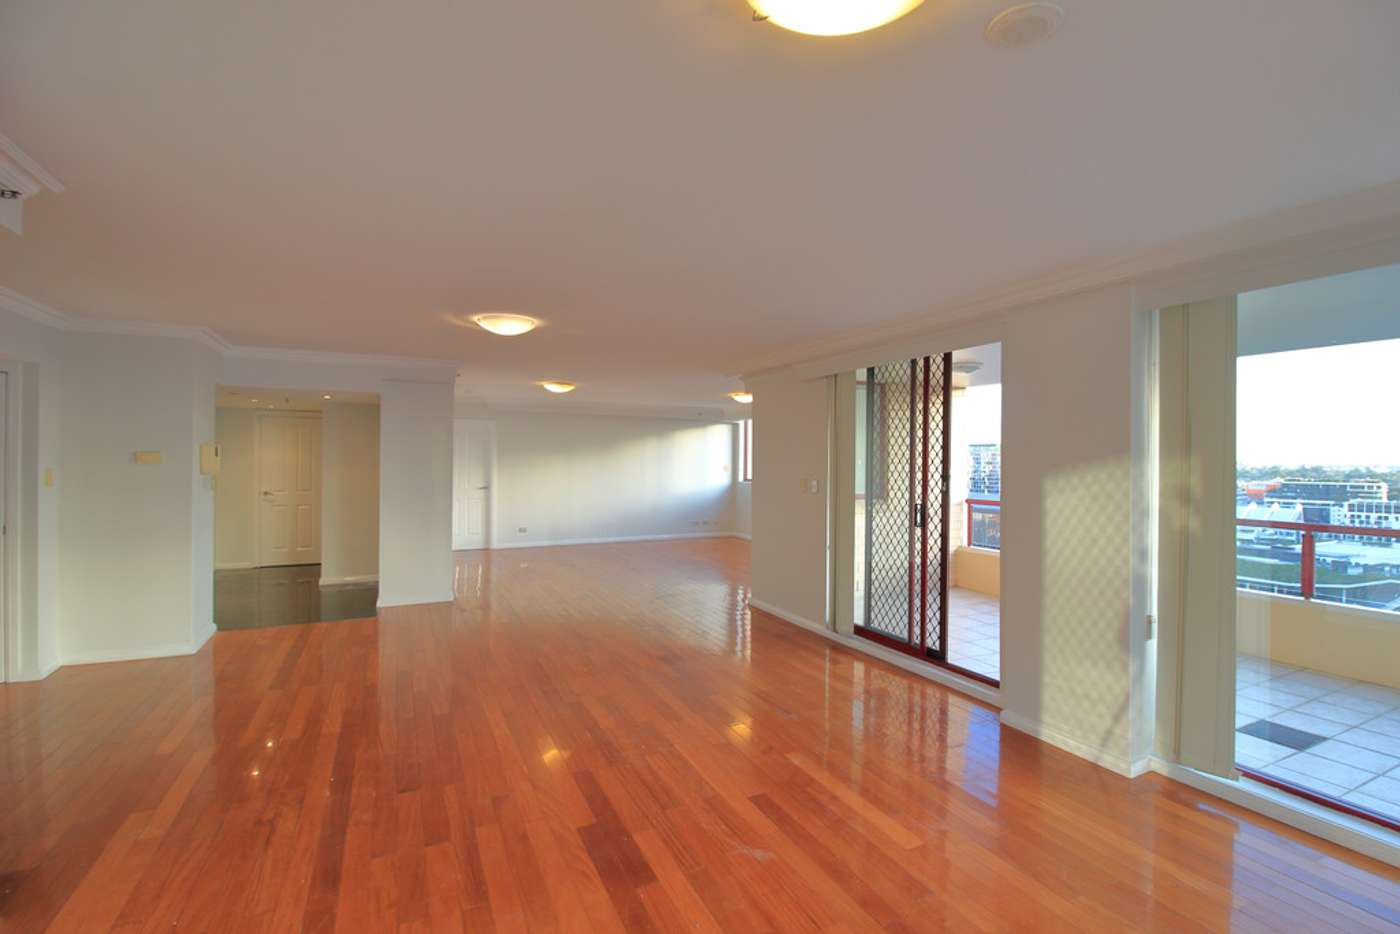 Fifth view of Homely apartment listing, 322/158-166 Day Street (289-295 Sussex Street), Sydney NSW 2000